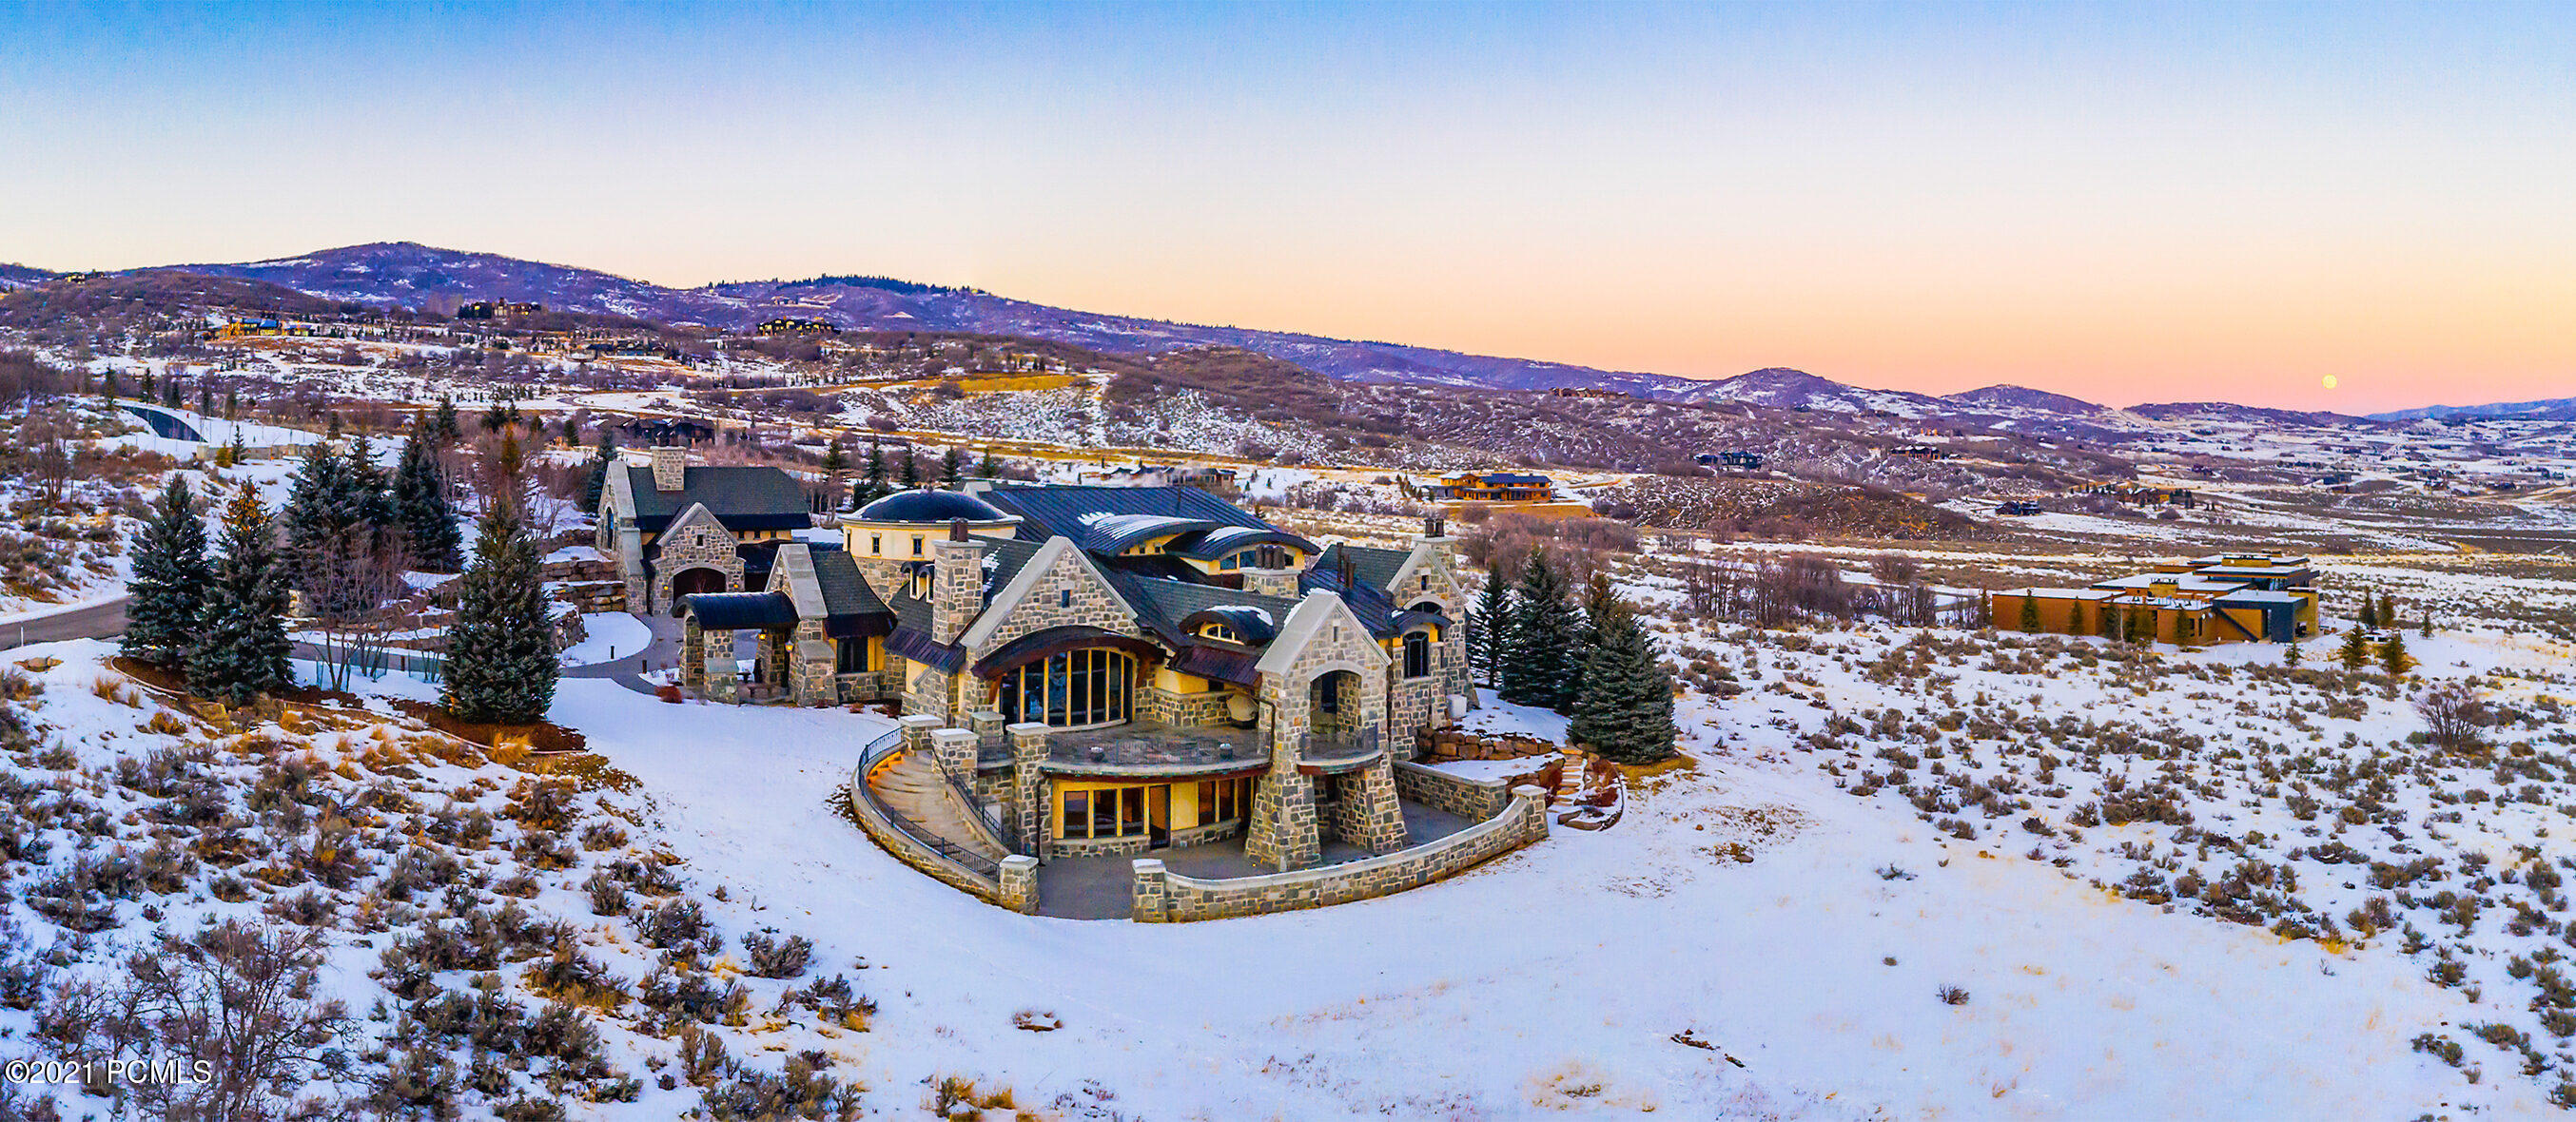 8066 Red Fox Court, Park City, Utah 84098, 5 Bedrooms Bedrooms, ,8 BathroomsBathrooms,Single Family,For Sale,Red Fox,12100048